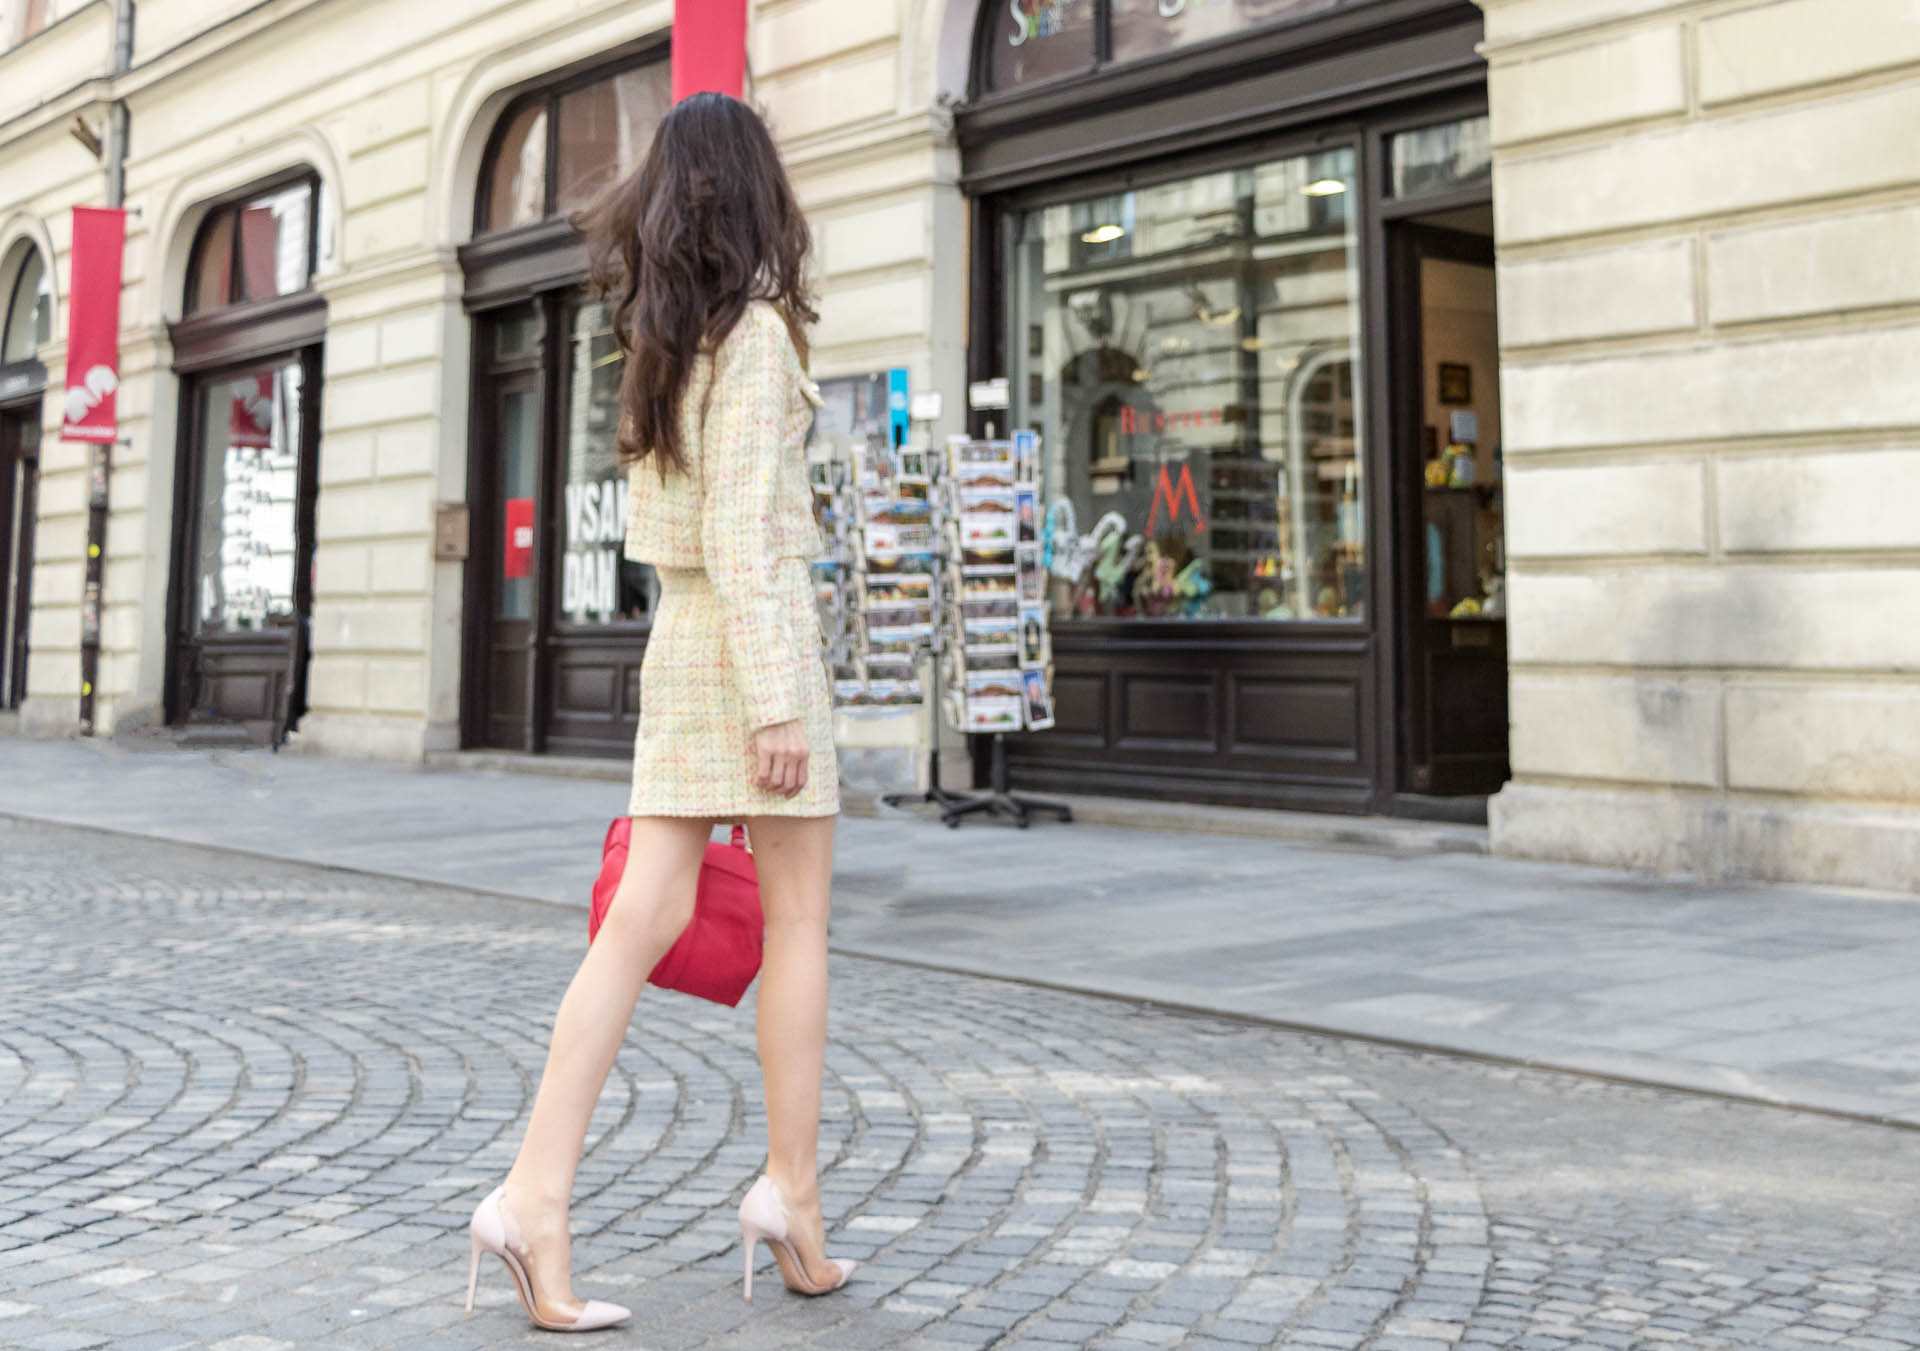 Fashion Blogger Veronika Lipar of Brunette from Wall Street wearing Storets yellow tweed mini skirt suit, Gianvito Rossi plexi pumps, See by Chloe pink top handle bag, Adam Selman x Lespecs white Lolita sunglasses on the streets in Ljubljana